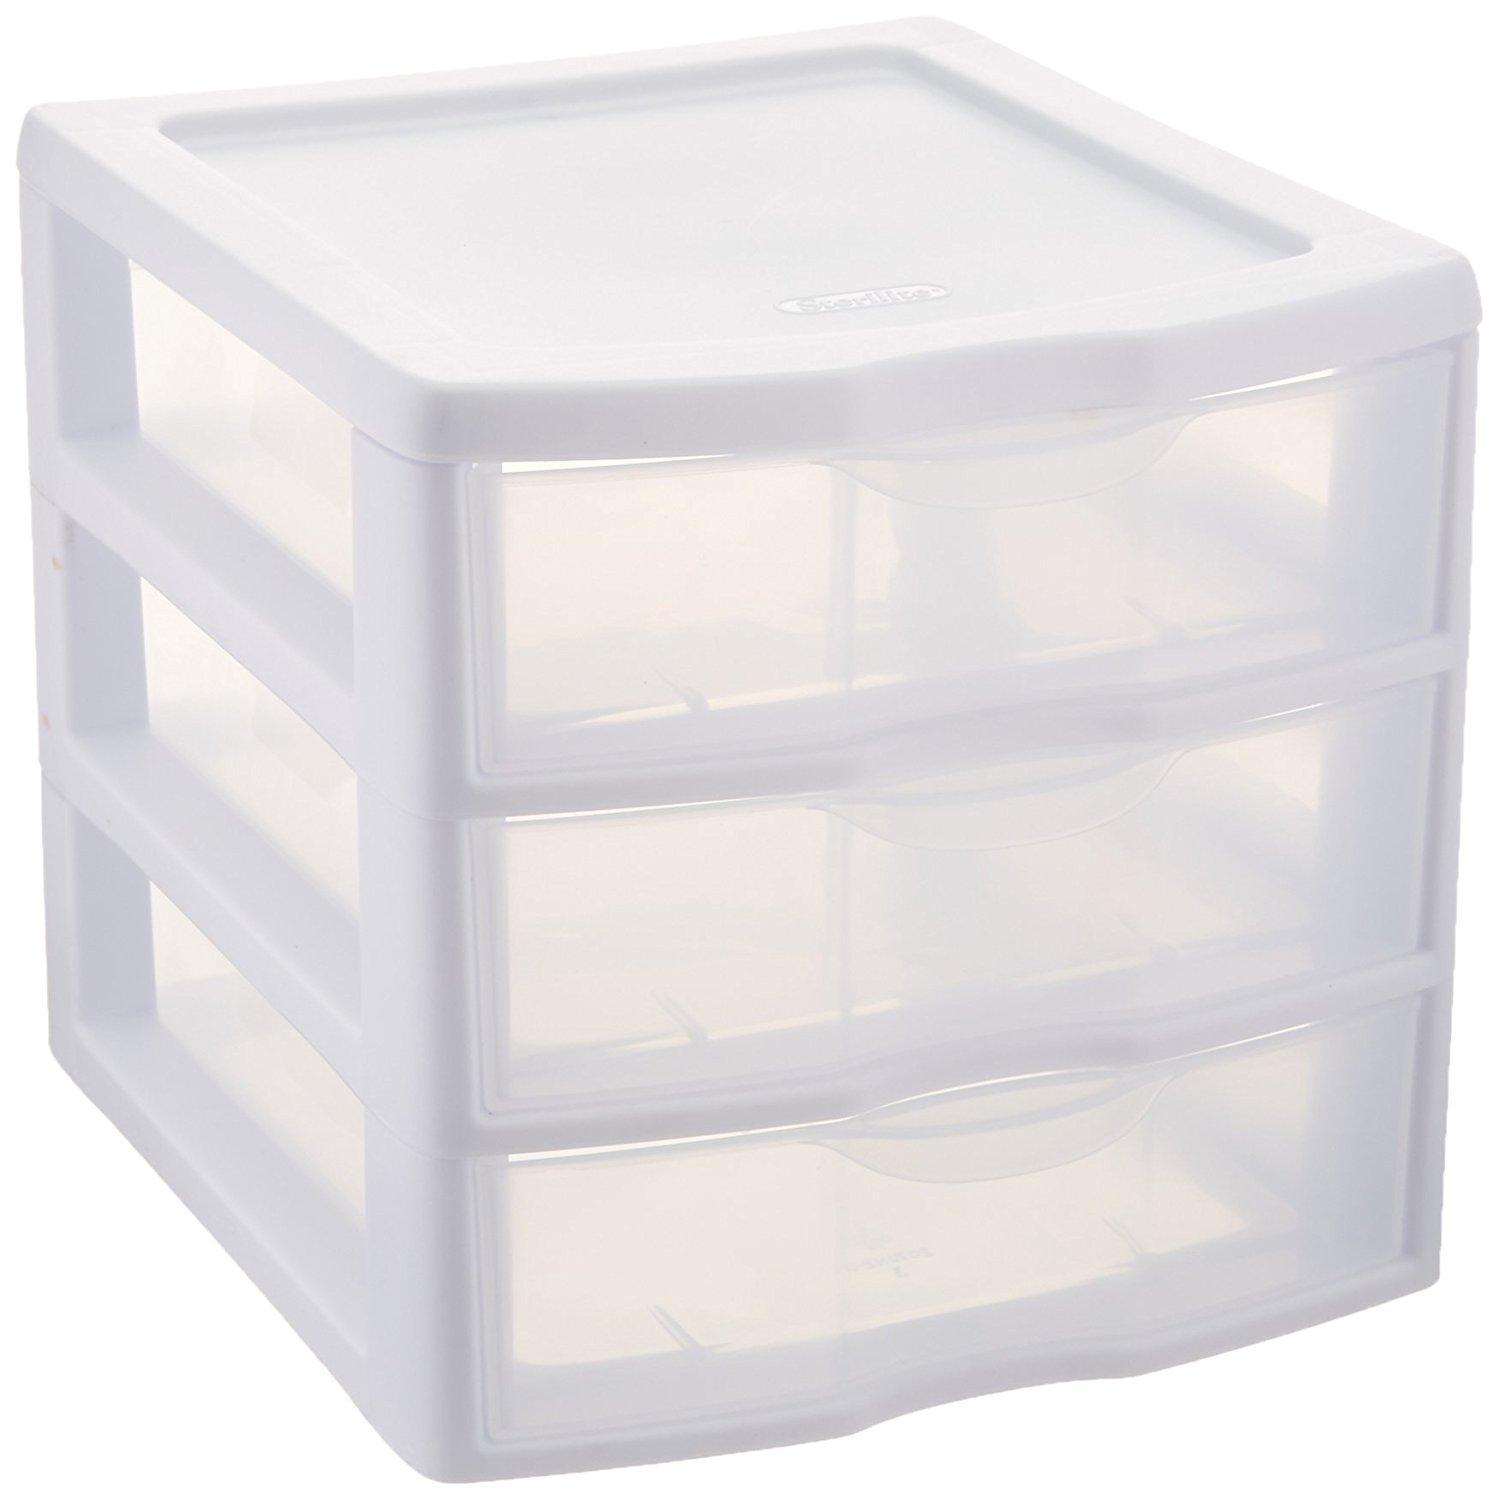 Easy and cheap plastic storage drawers